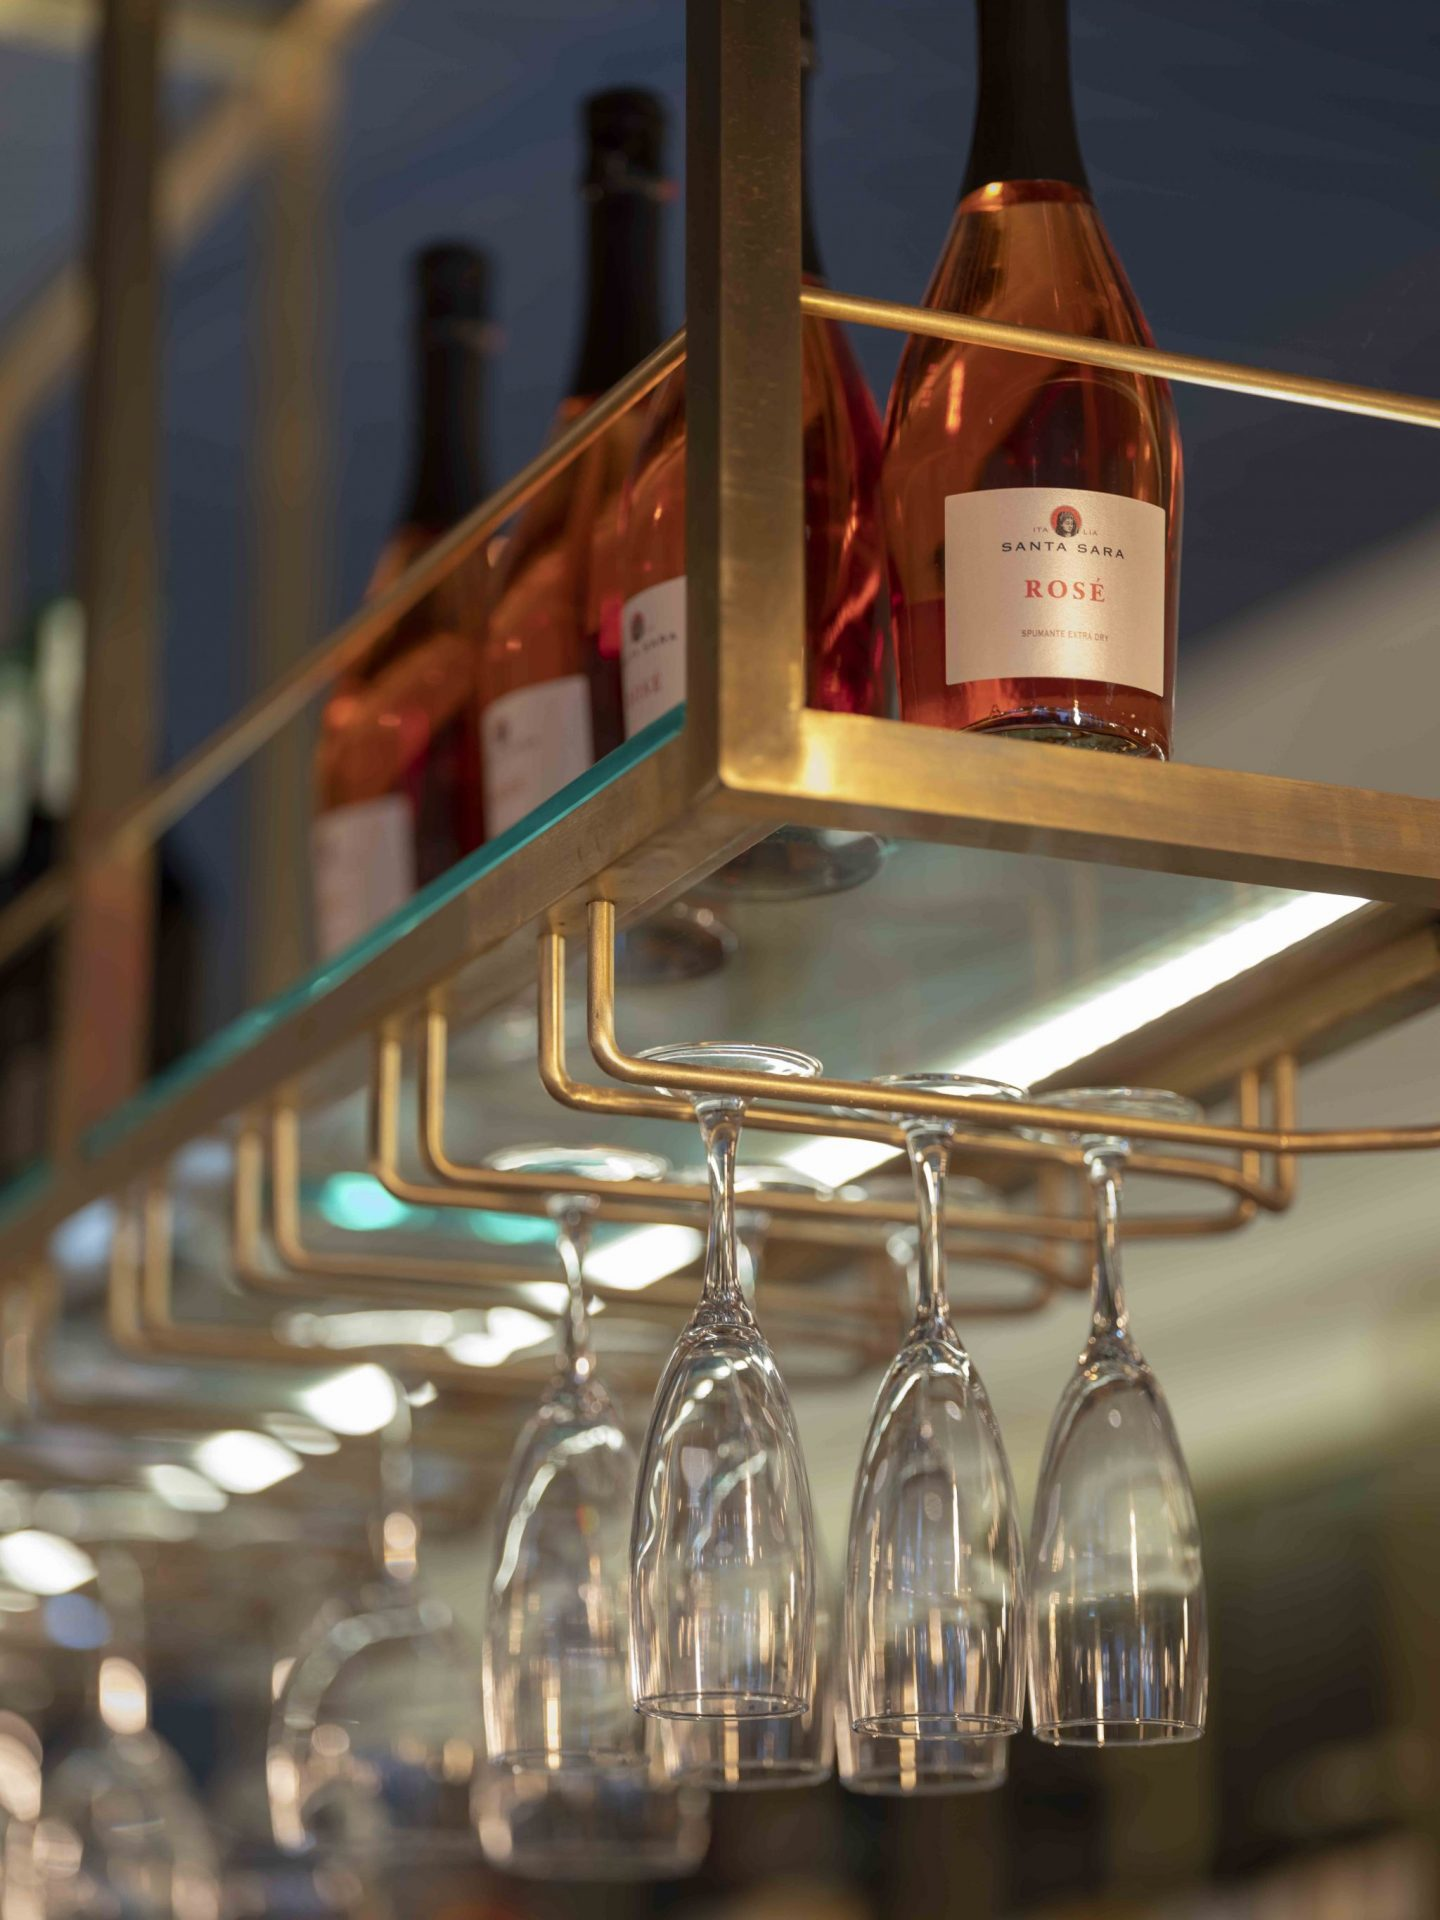 carluccios-chester-food-review-blogger-uk-itallian-restaurant-family-chef-wine